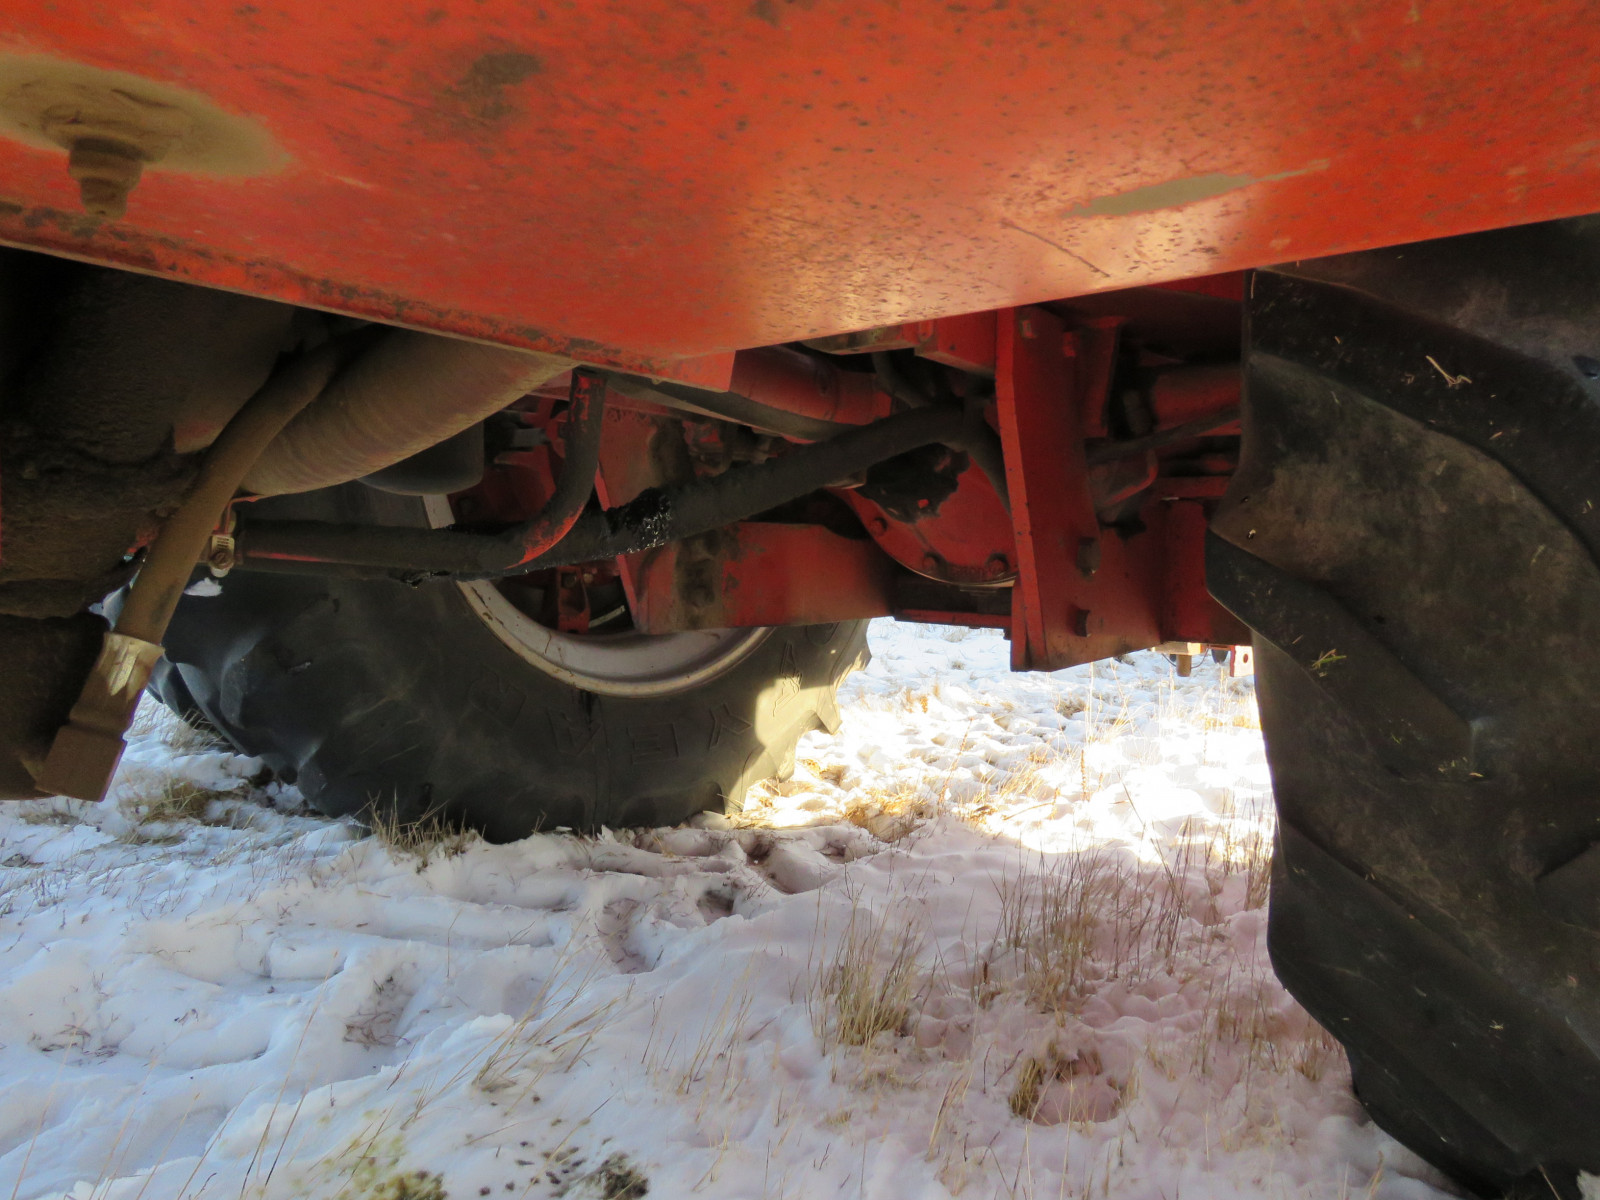 Case 4890 4WD Tractor 8861280 - Image 15